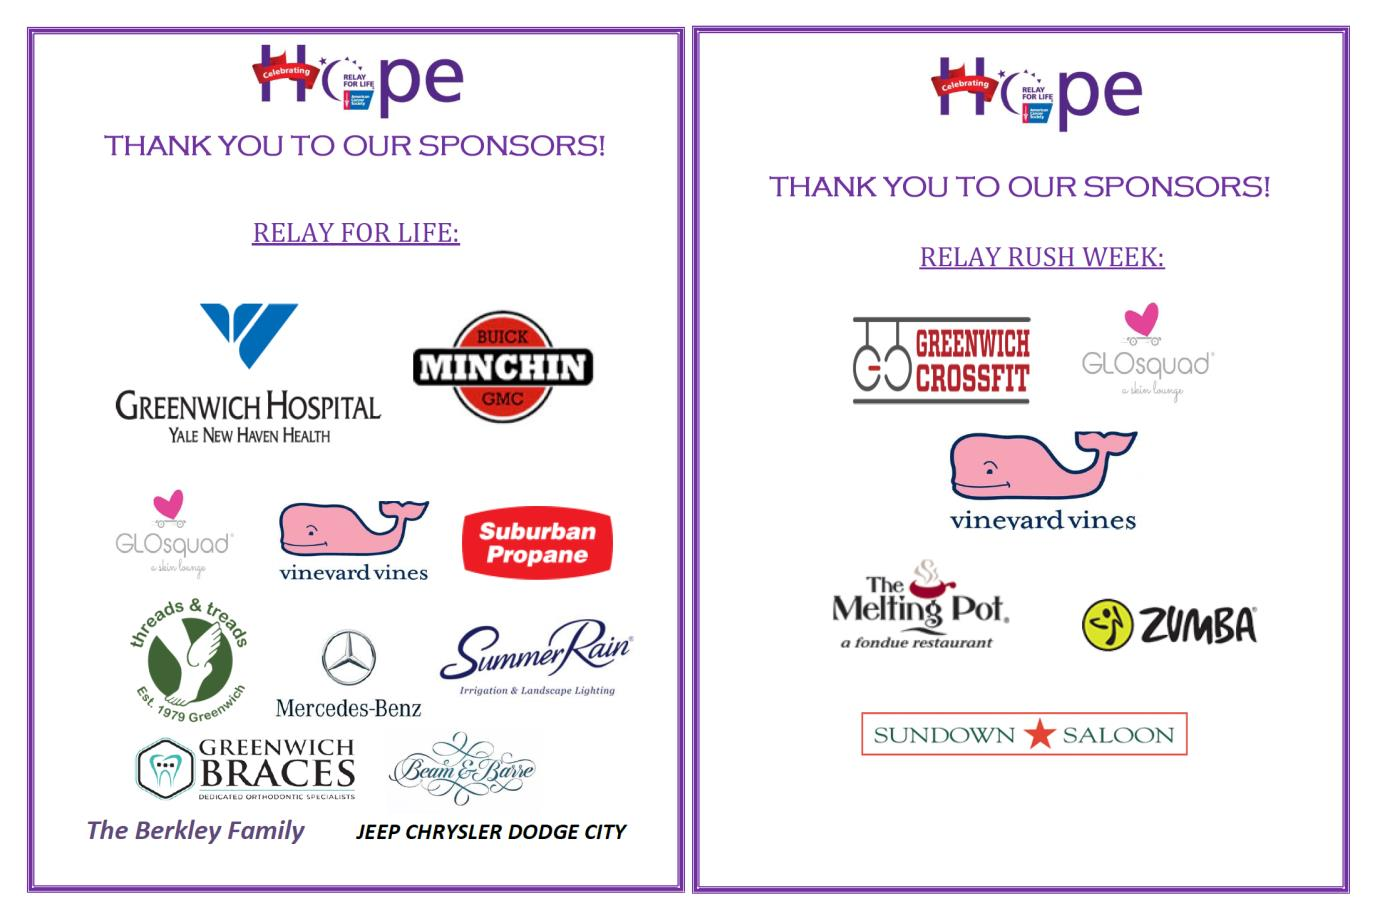 Thank you Relay Rush/ Sponsors